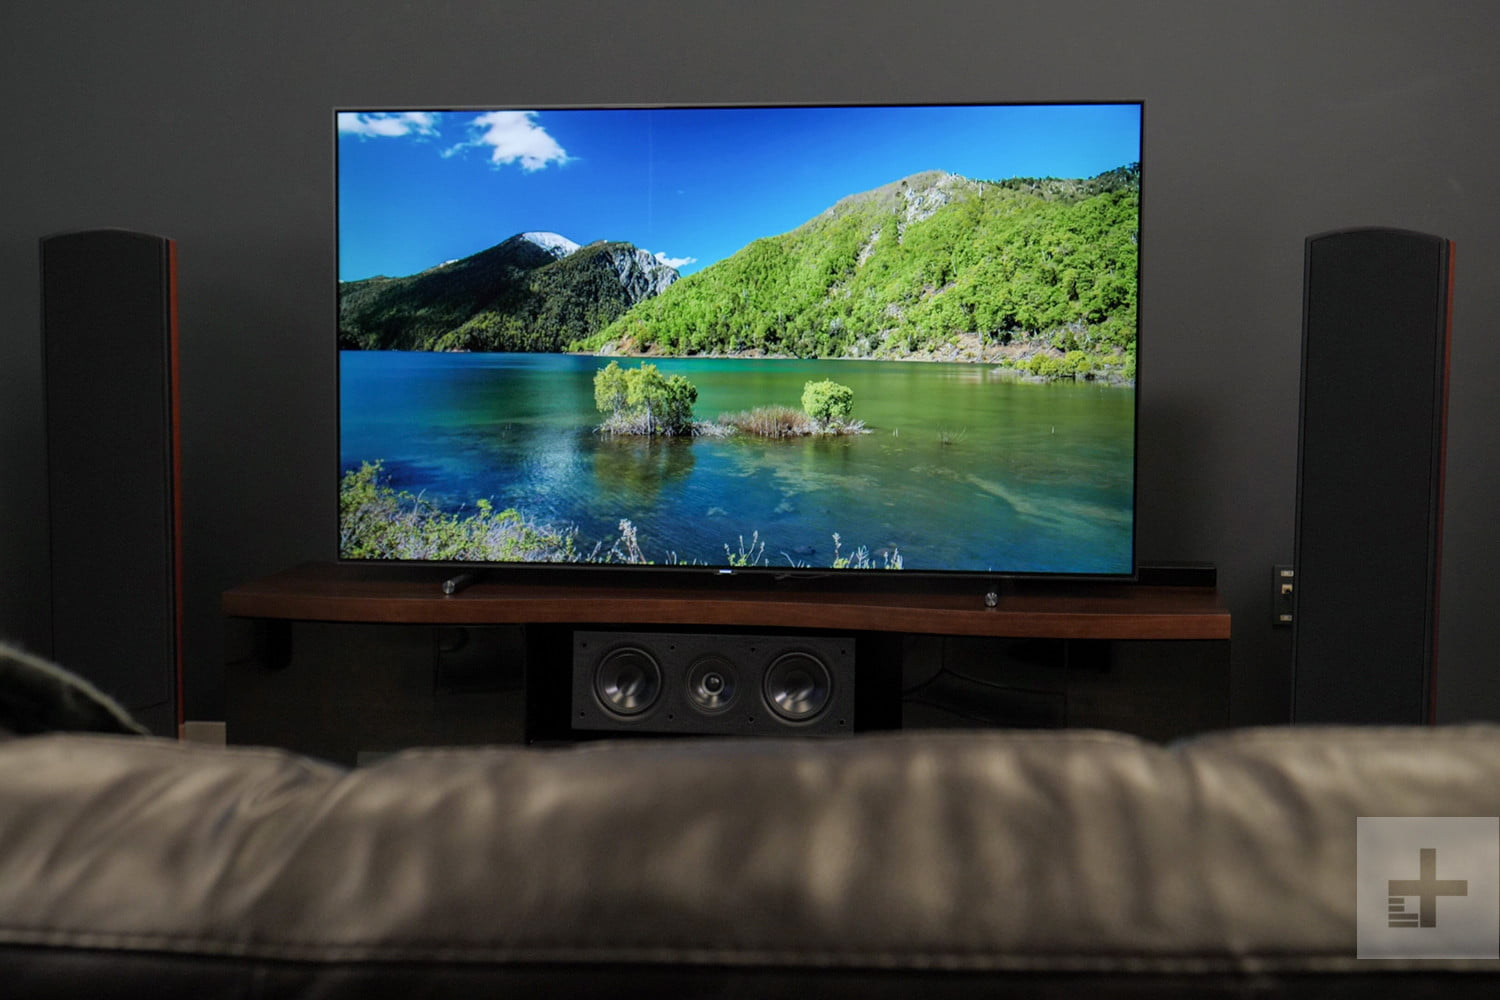 Samsung Flat Screen Tv Price Samsung Q9 Q9f Qled Review Qn65q9f Qn75q9f Digital Trends